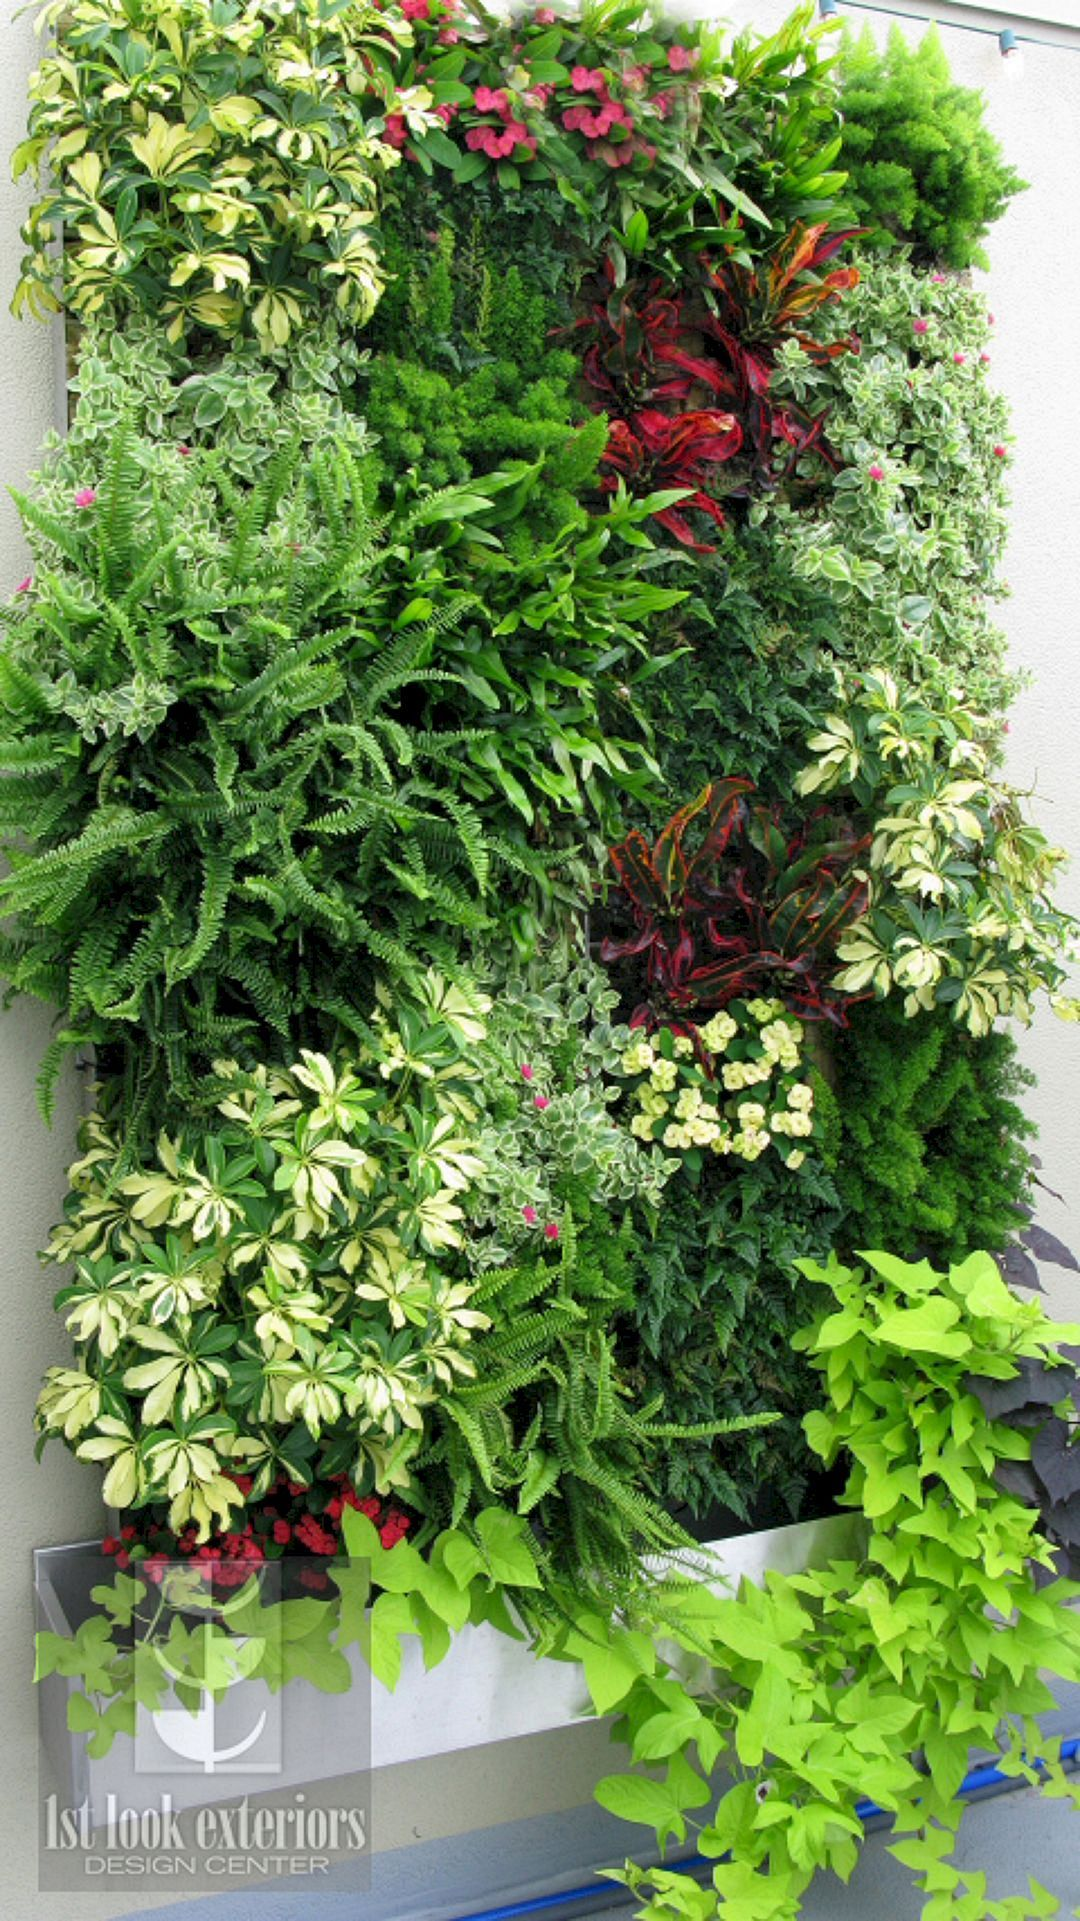 Phenomenon 40 Marvelous Diy Wall Gardens Outdoor Design Ideas Https Decoor Net 40 Marvelous Diy Wall Garden Wall Designs Vertical Garden Diy Vertical Garden